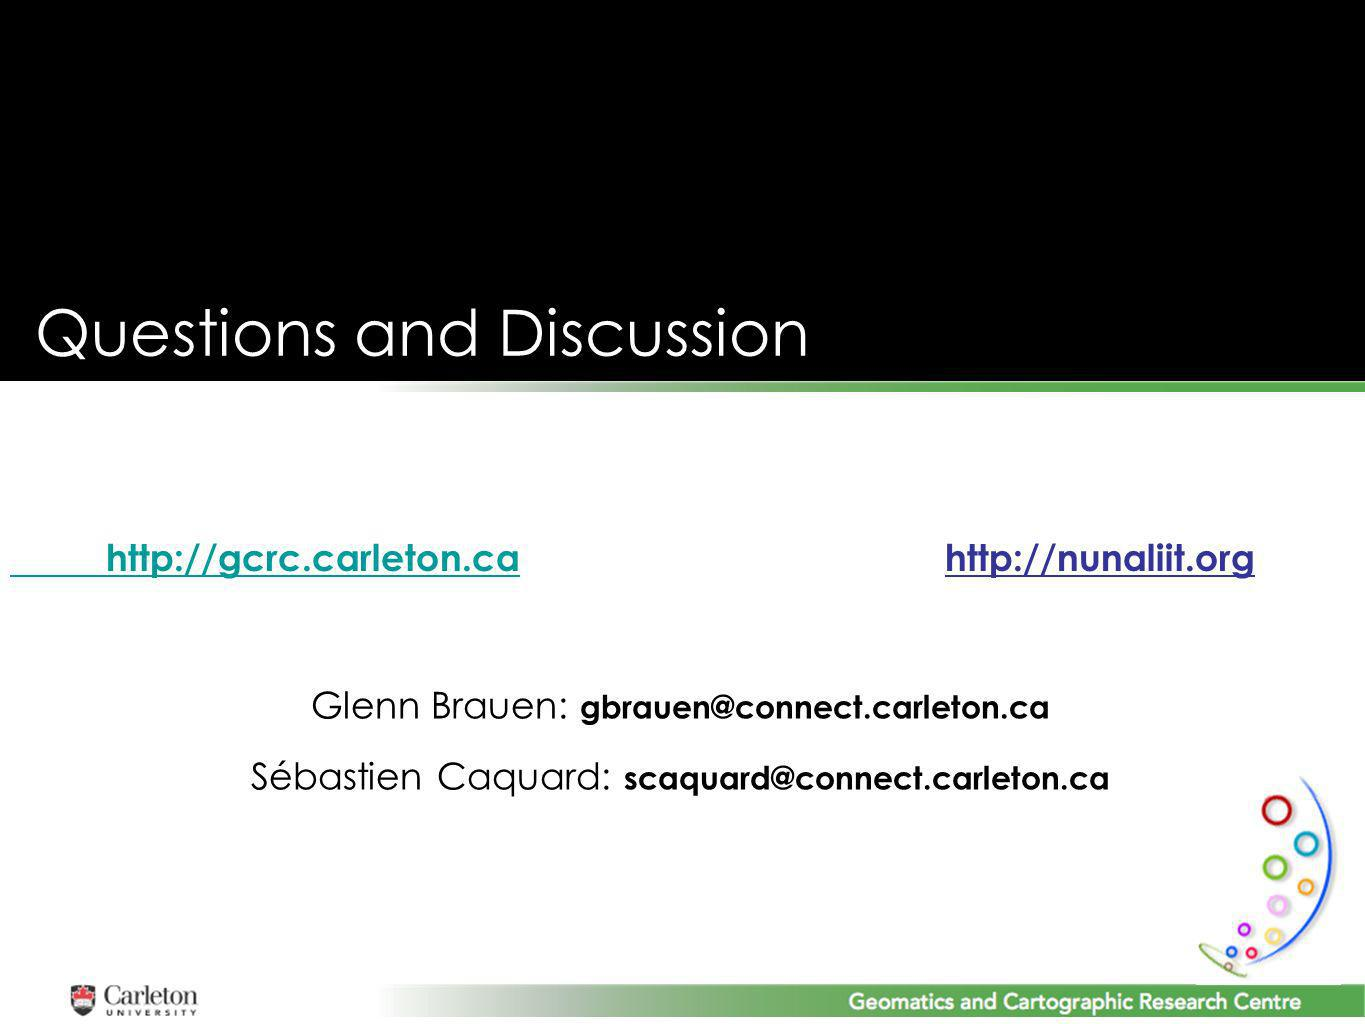 Questions and Discussion http://gcrc.carleton.cahttp://gcrc.carleton.ca http://nunaliit.org Glenn Brauen: gbrauen@connect.carleton.ca Sébastien Caquard: scaquard@connect.carleton.ca